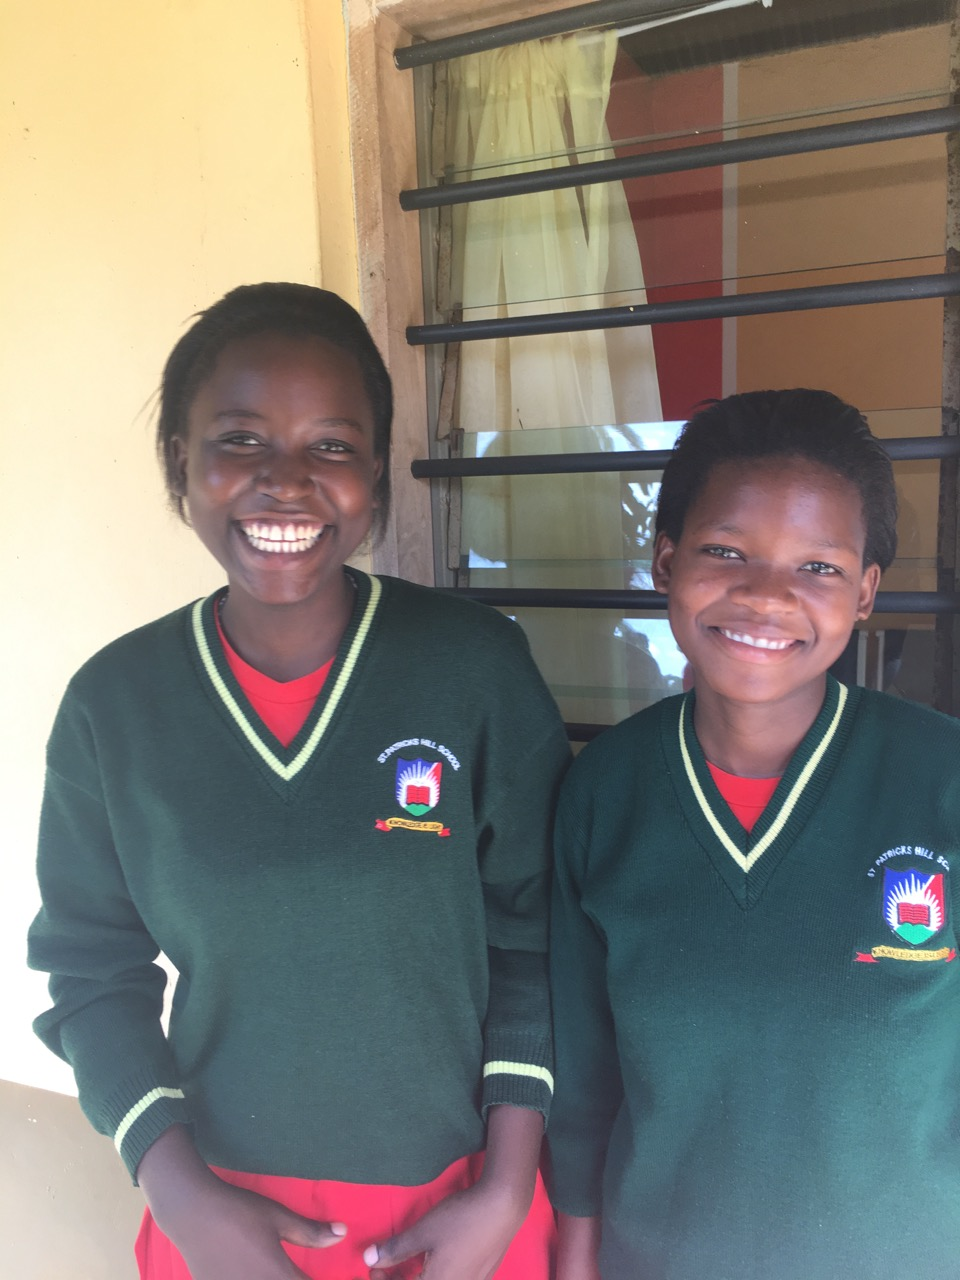 Linet (left) and Peris (right) at their school.